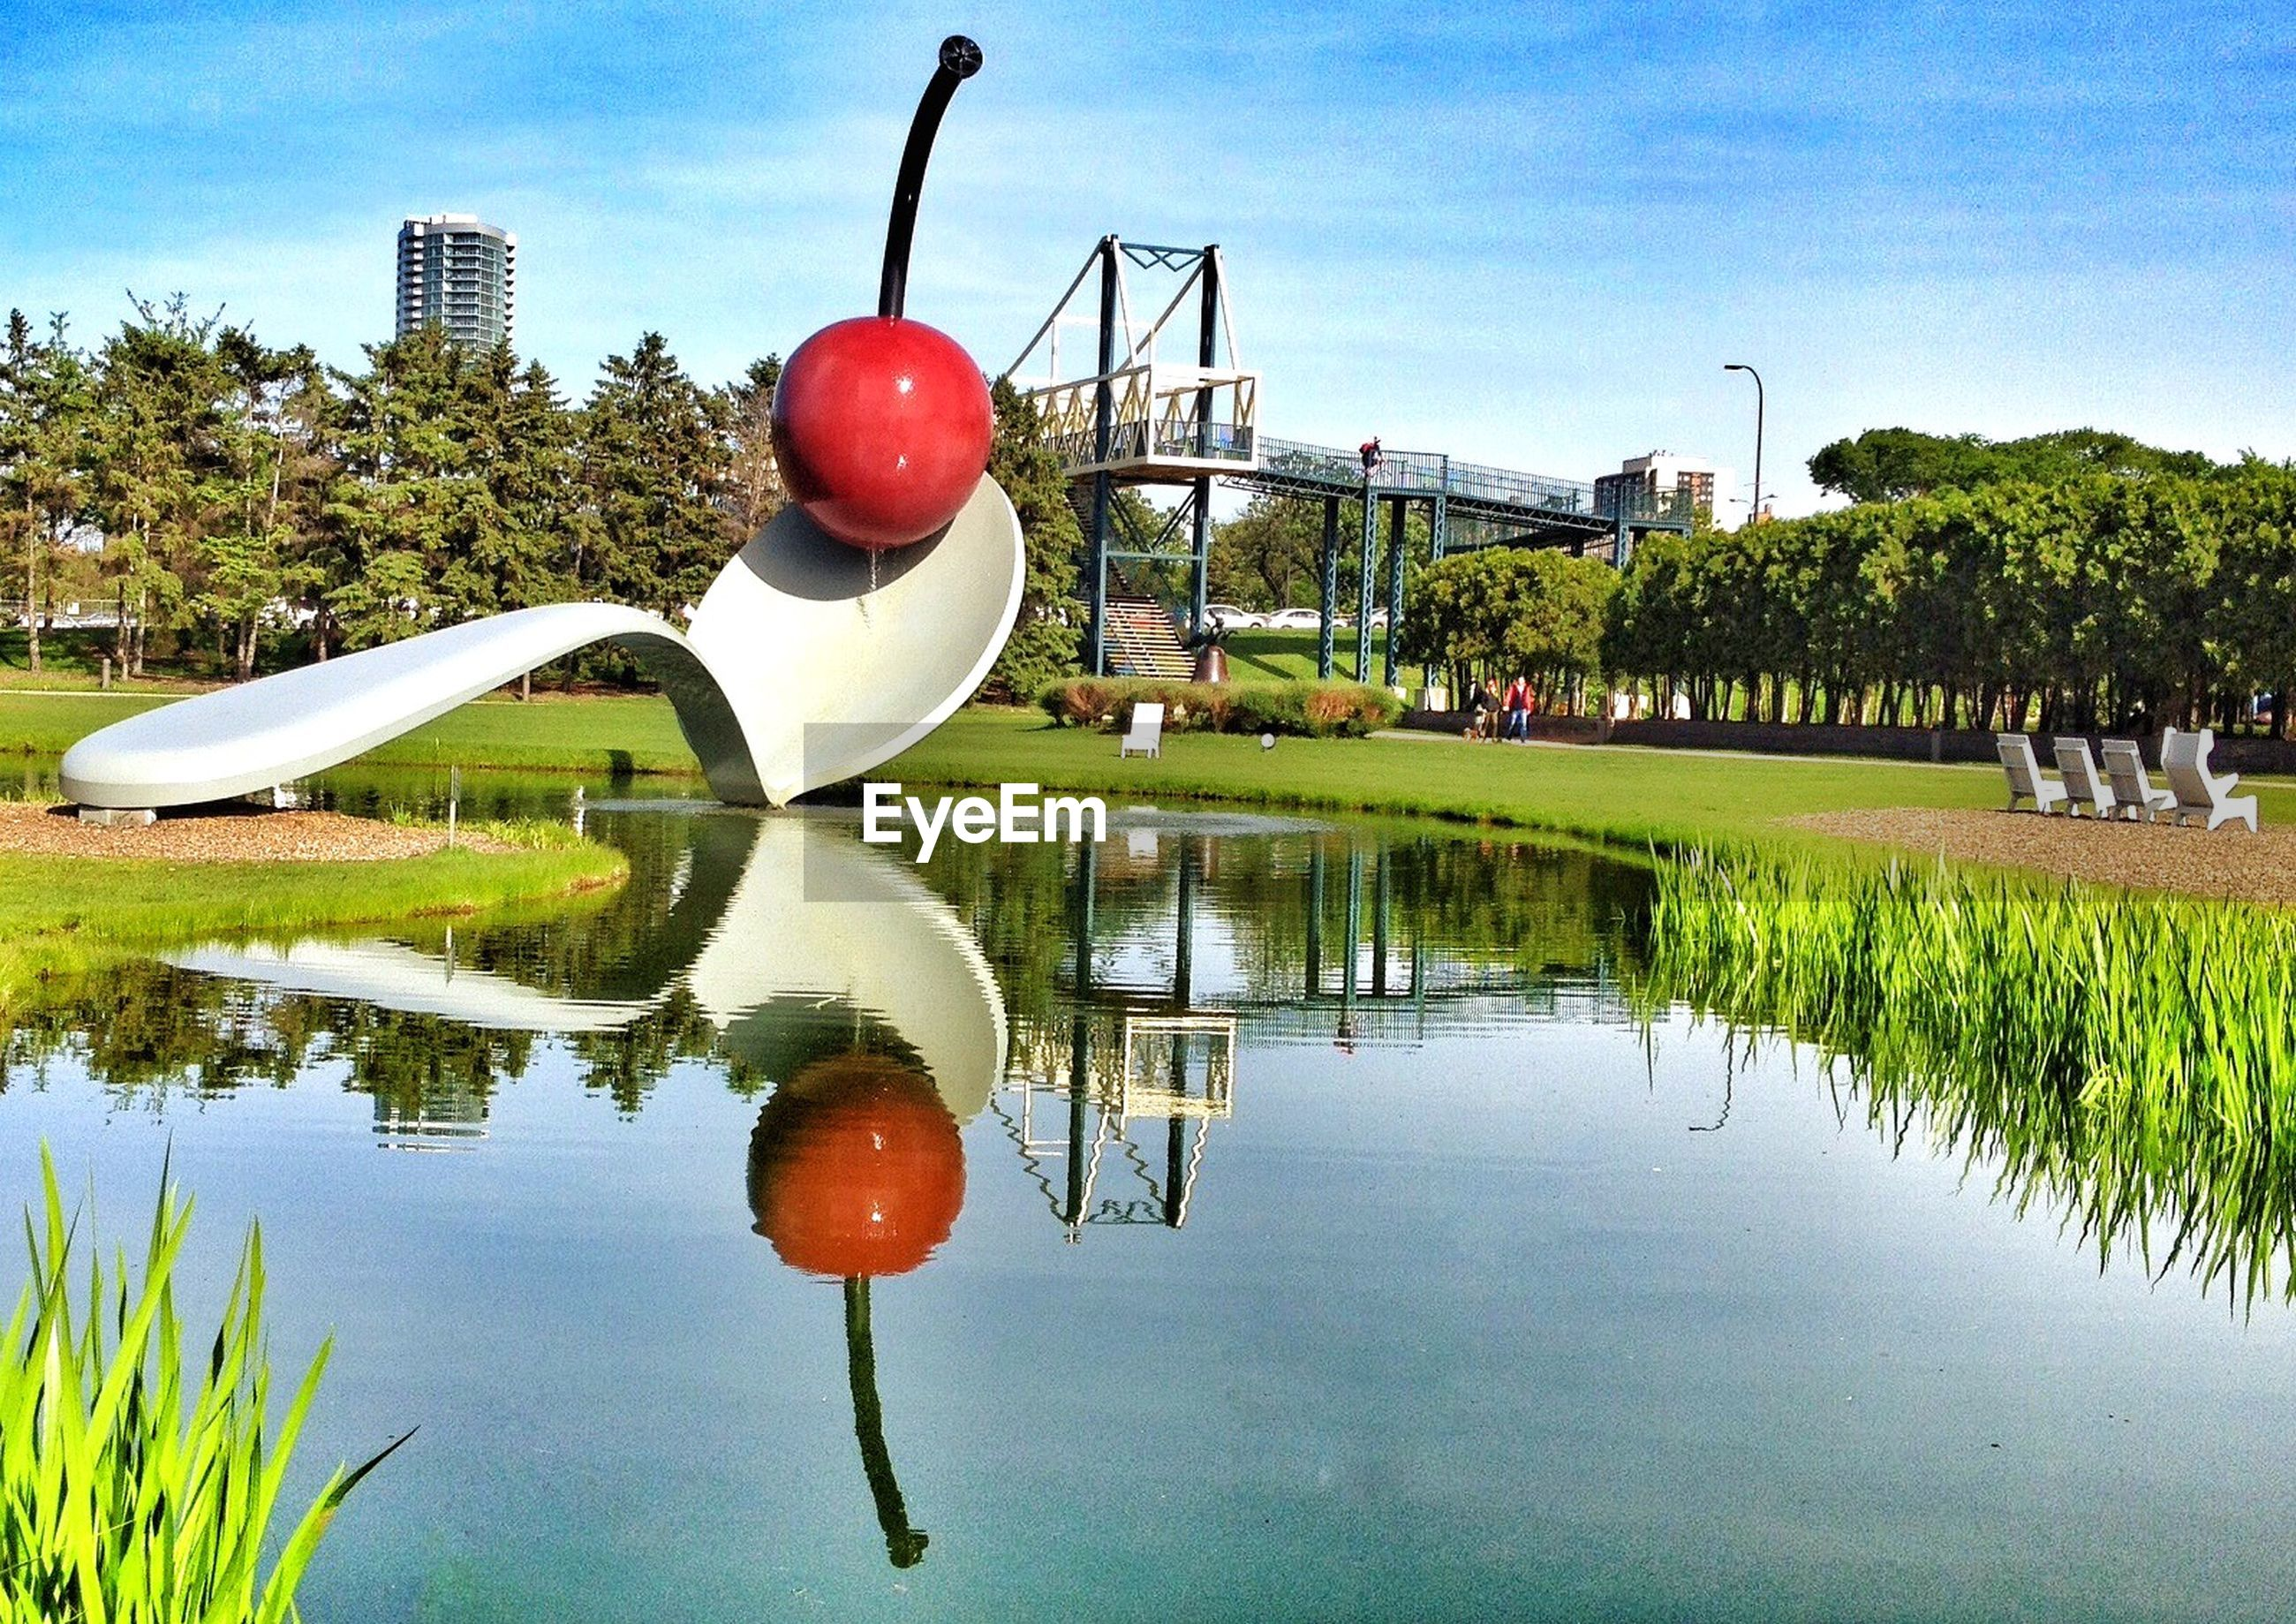 water, tree, reflection, mid-air, sky, waterfront, transportation, lake, buoy, river, built structure, balloon, building exterior, mode of transport, outdoors, architecture, nature, hanging, grass, day